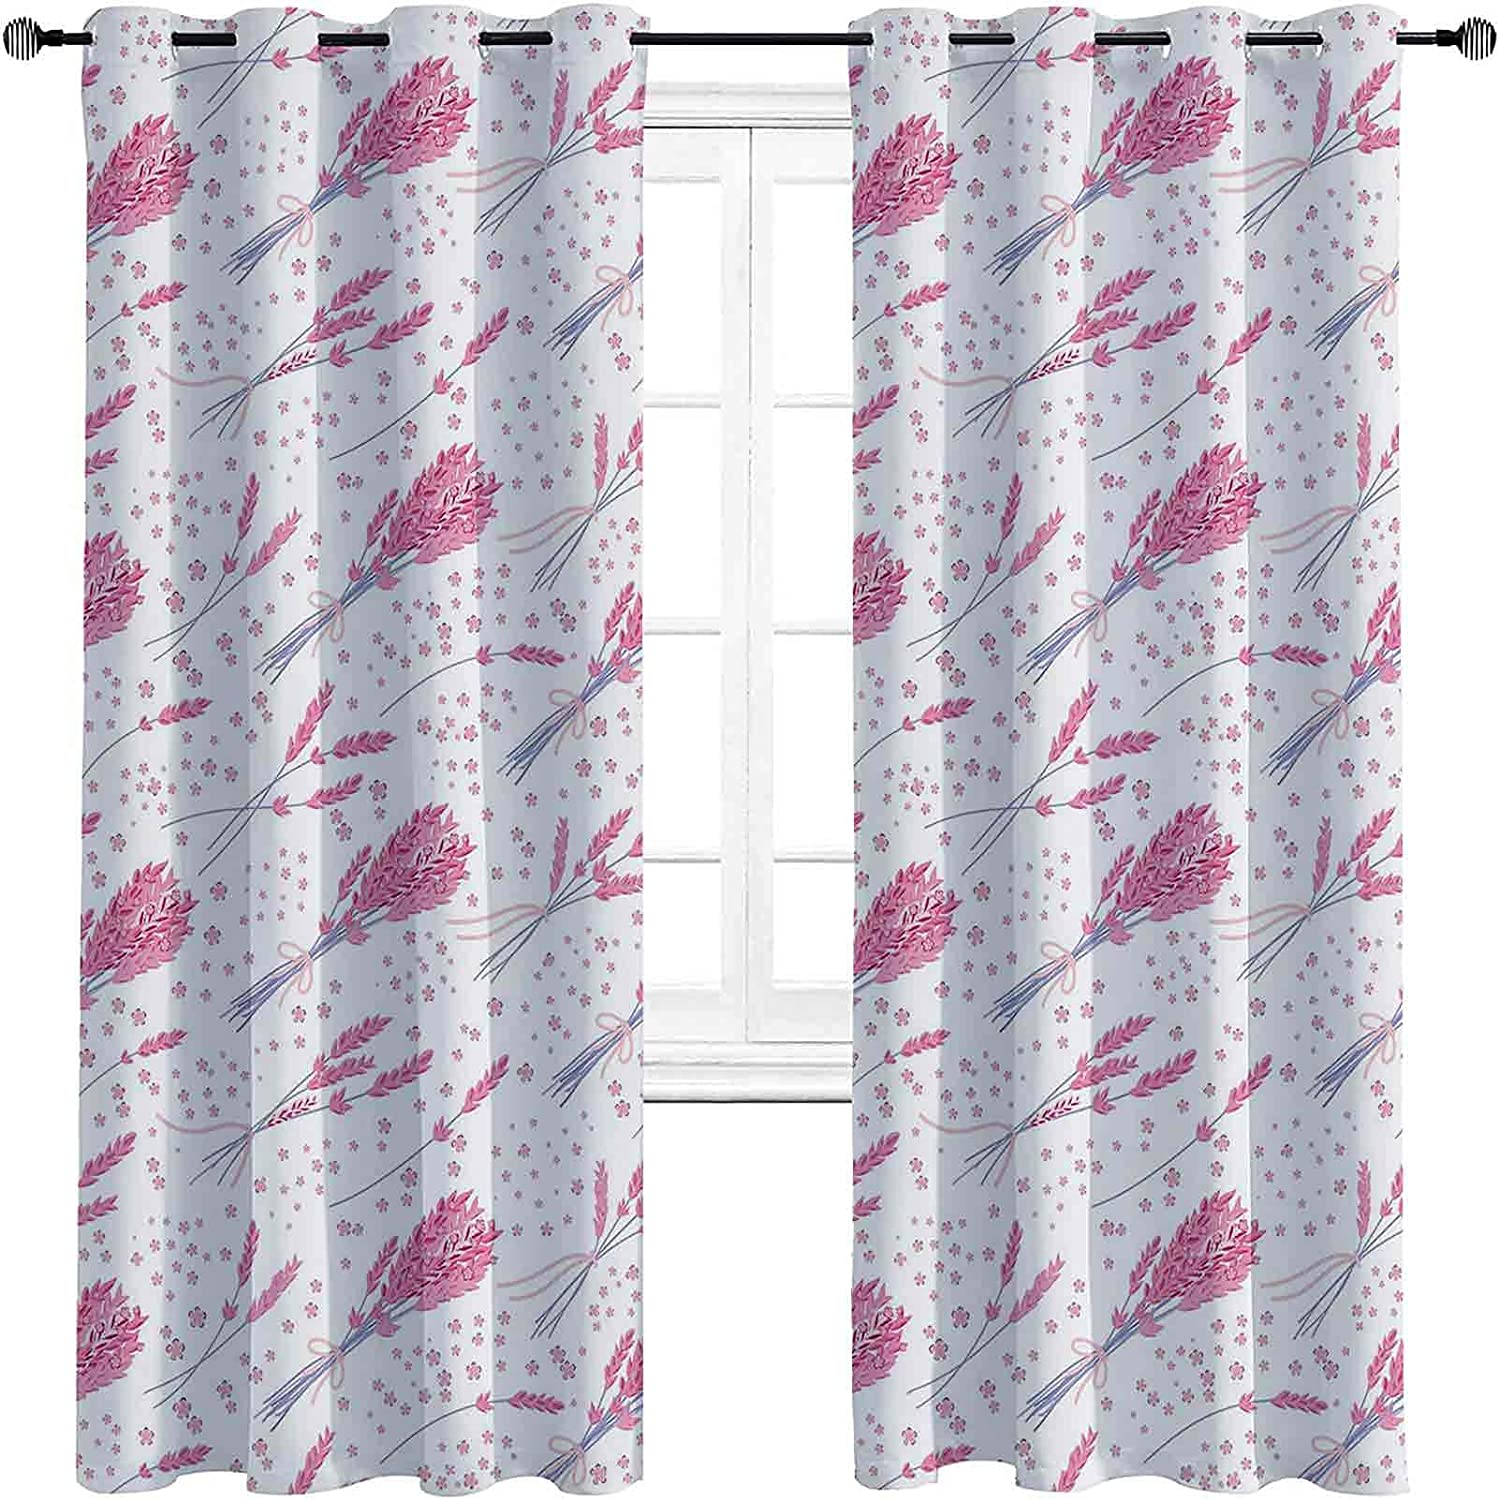 Lavender Blackout Curtains with In a popularity Grommets Vintage Max 54% OFF Hand darken Dr